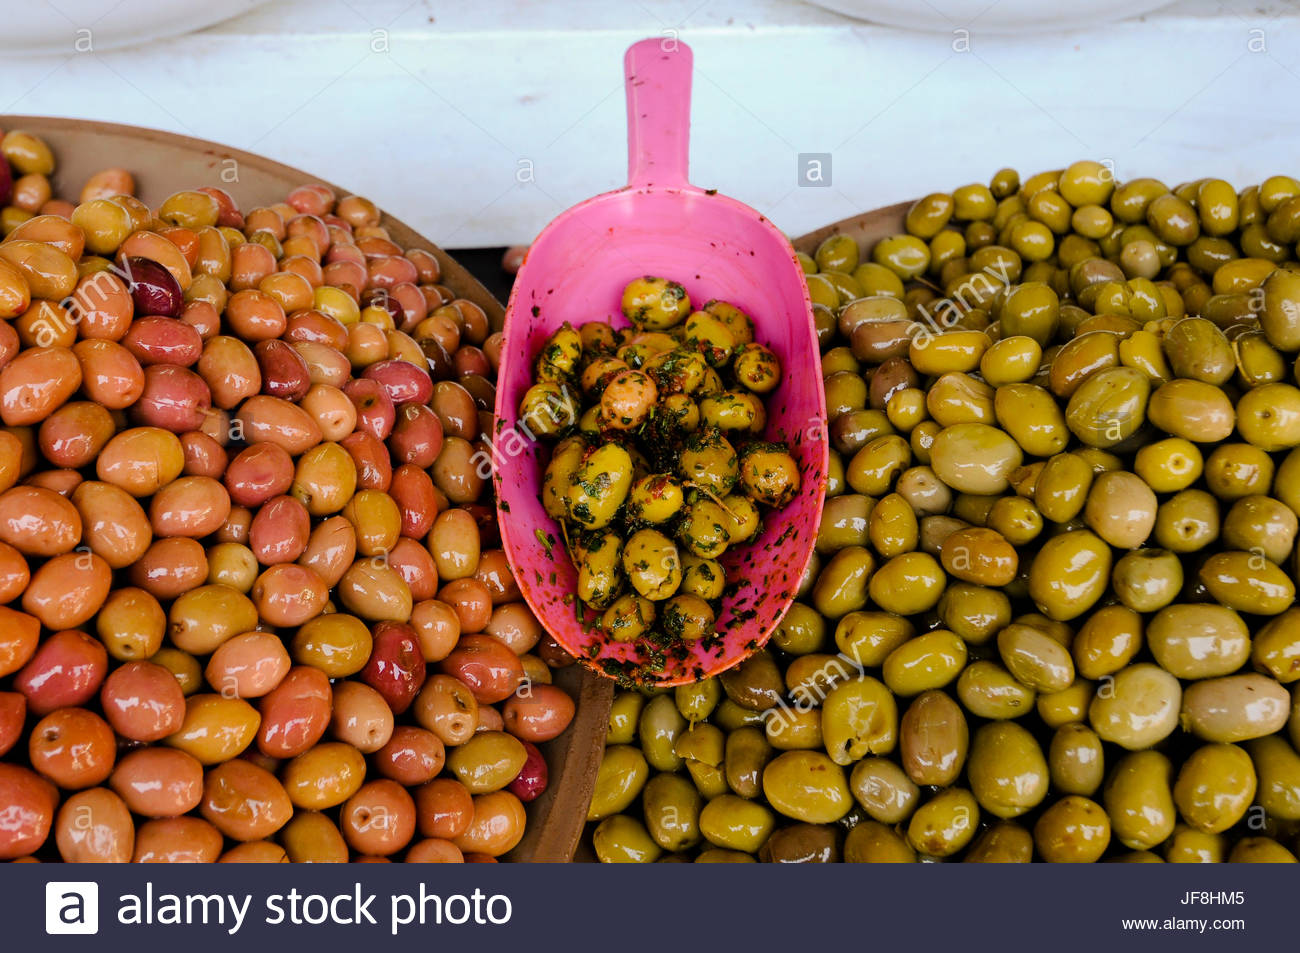 Bowls of cured olives for sale at the Medina souk. - Stock Image